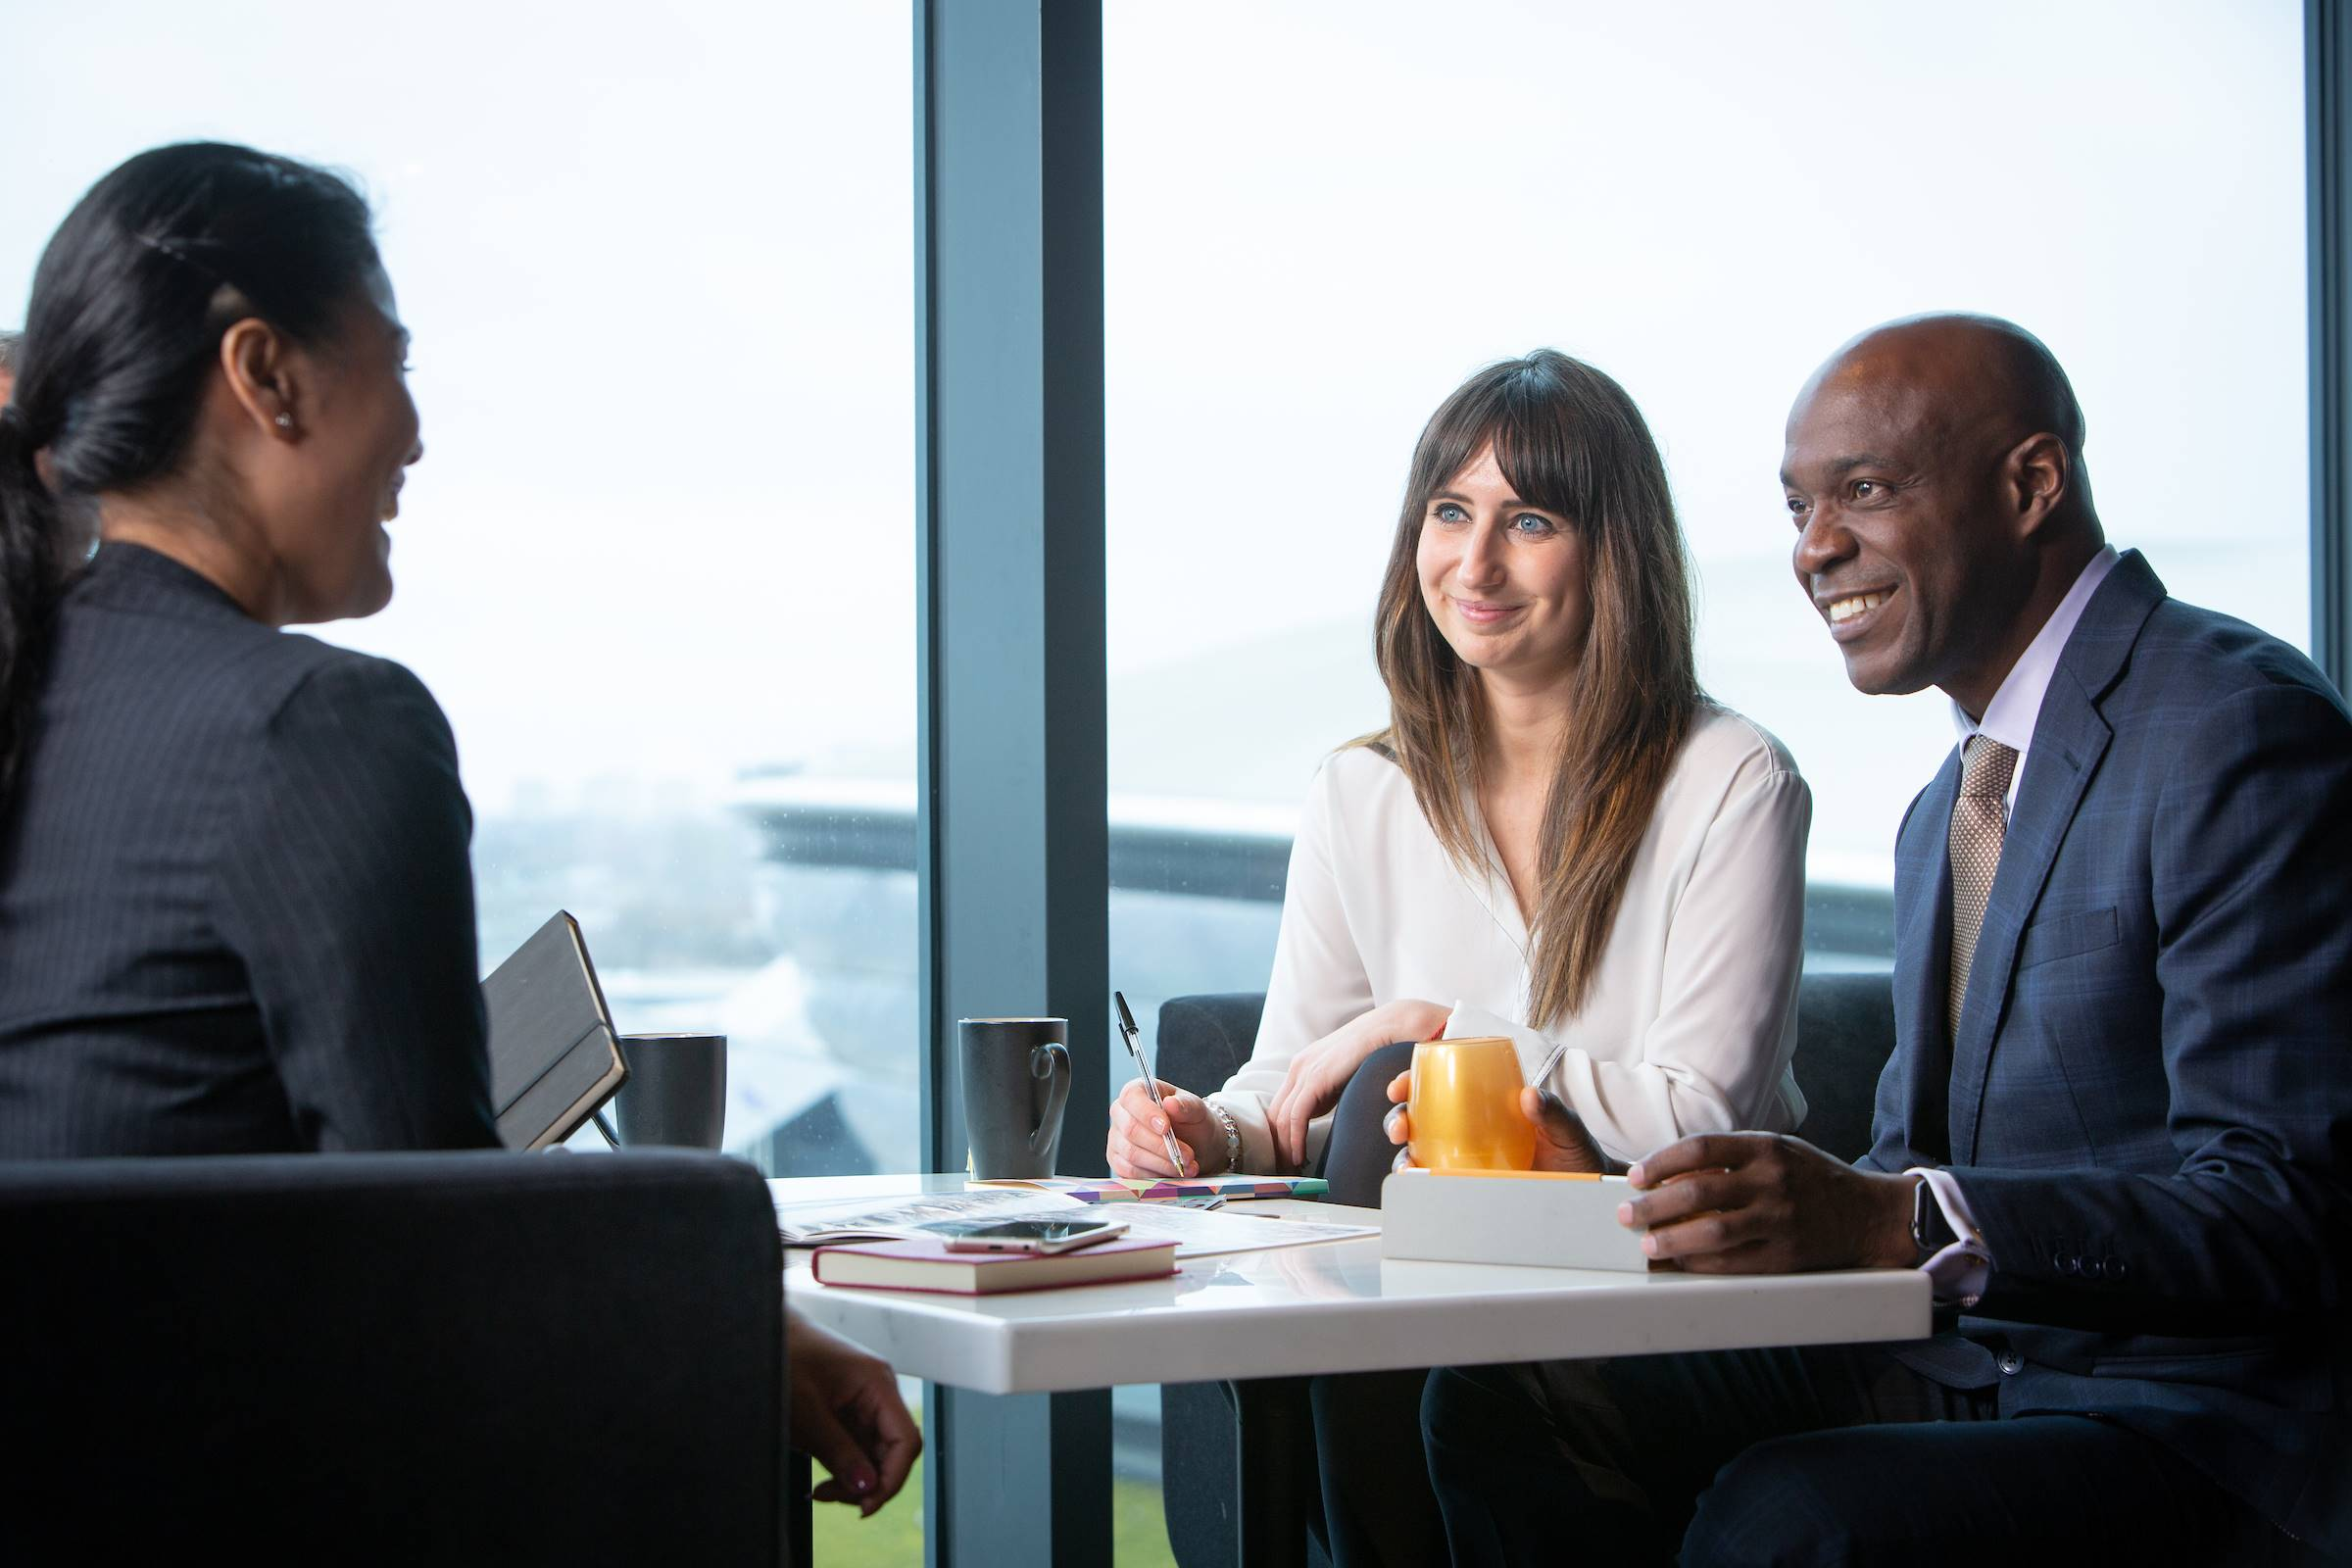 Three people sitting with coffee chatting business